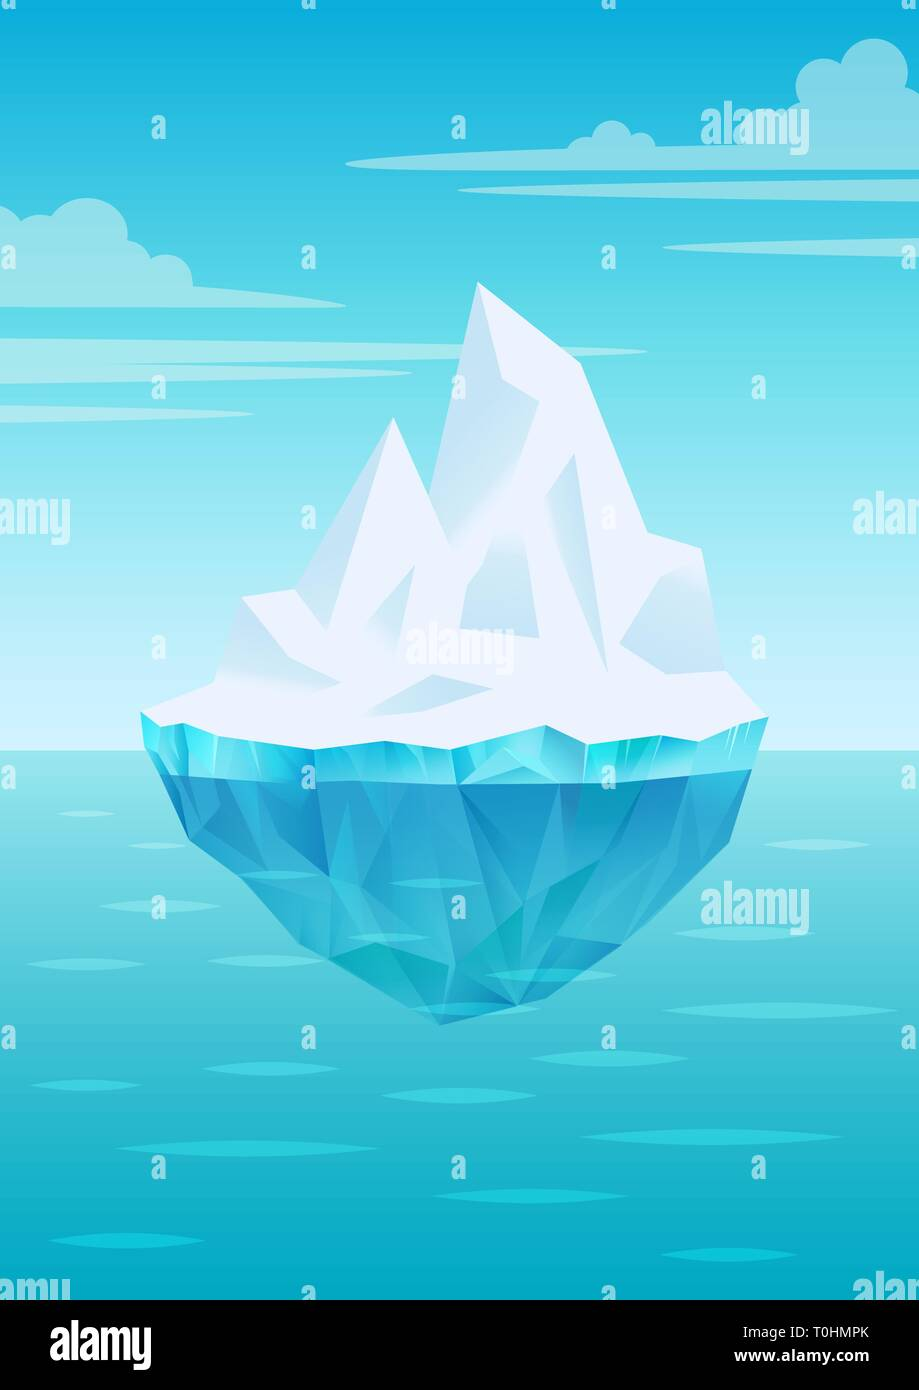 Iceberg floating on water waves with underwater part, bright blue sky with clouds, freshwater ice, glacier or ice shelf piece, vector - Stock Vector